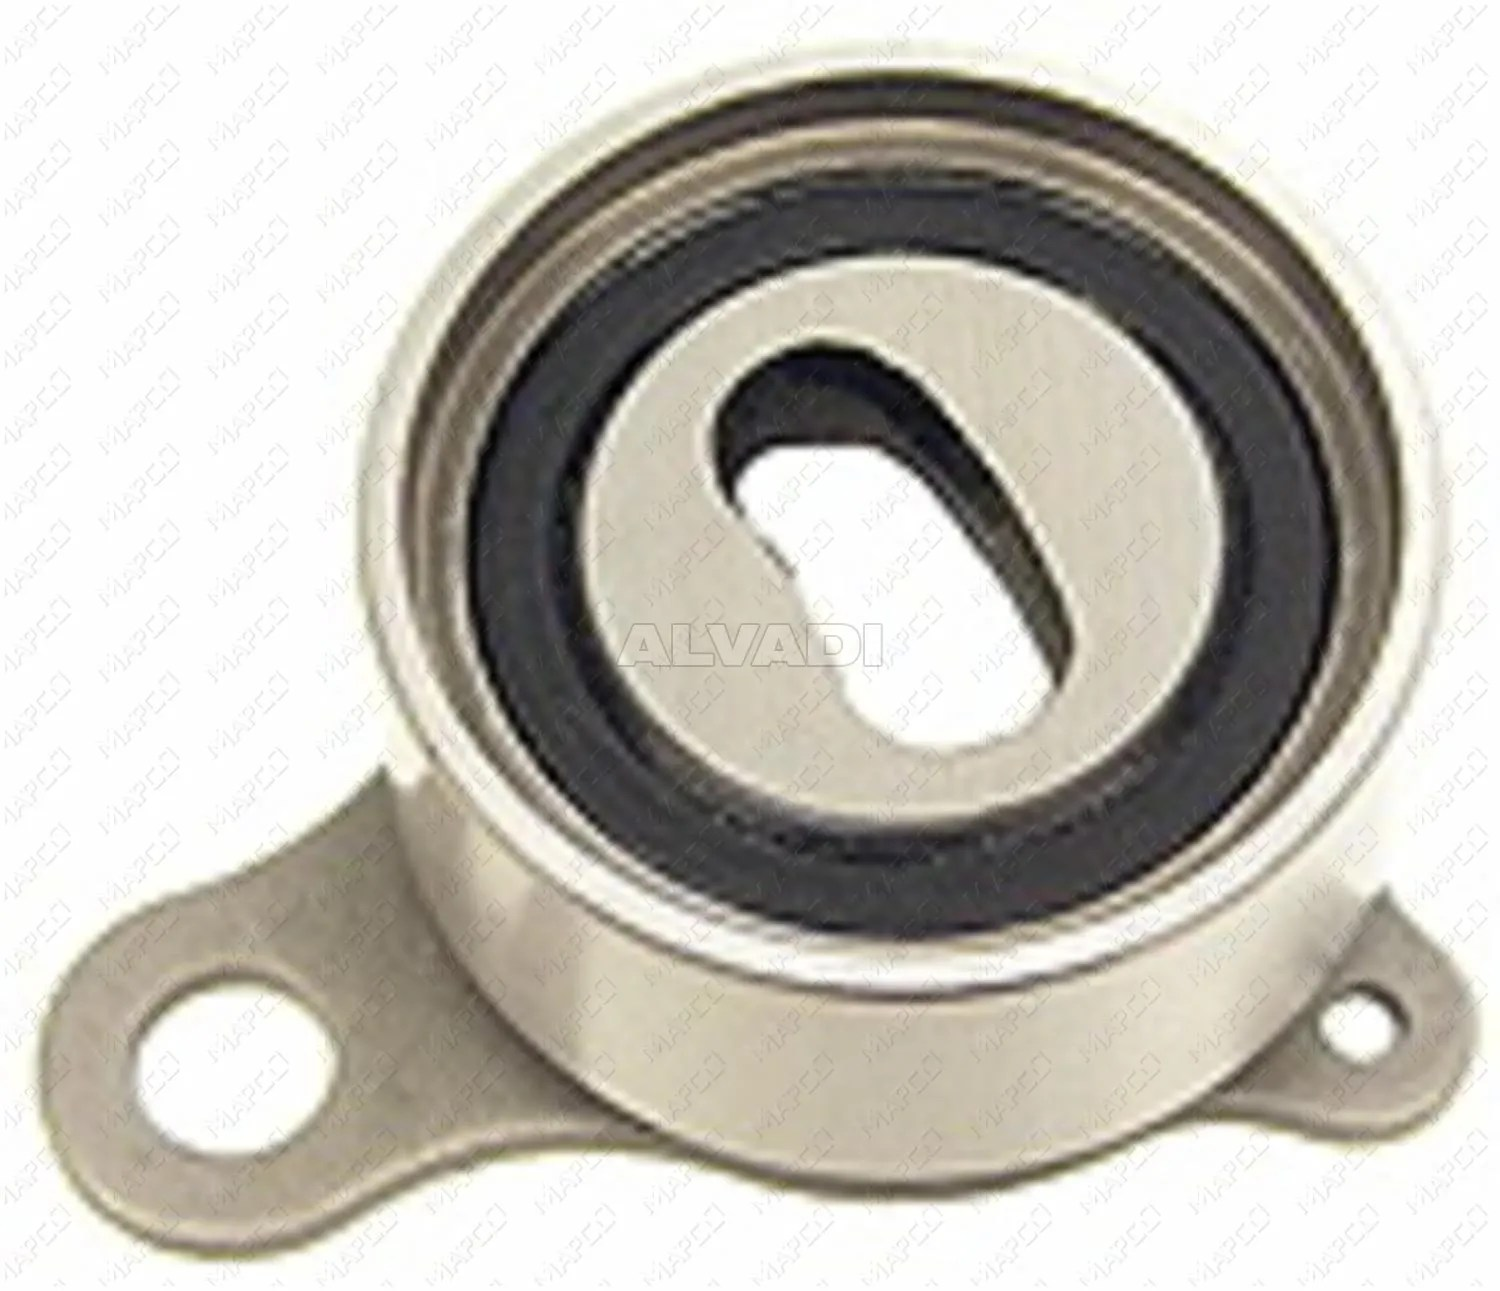 hight resolution of tensioner pulley timing belt mapco 24593